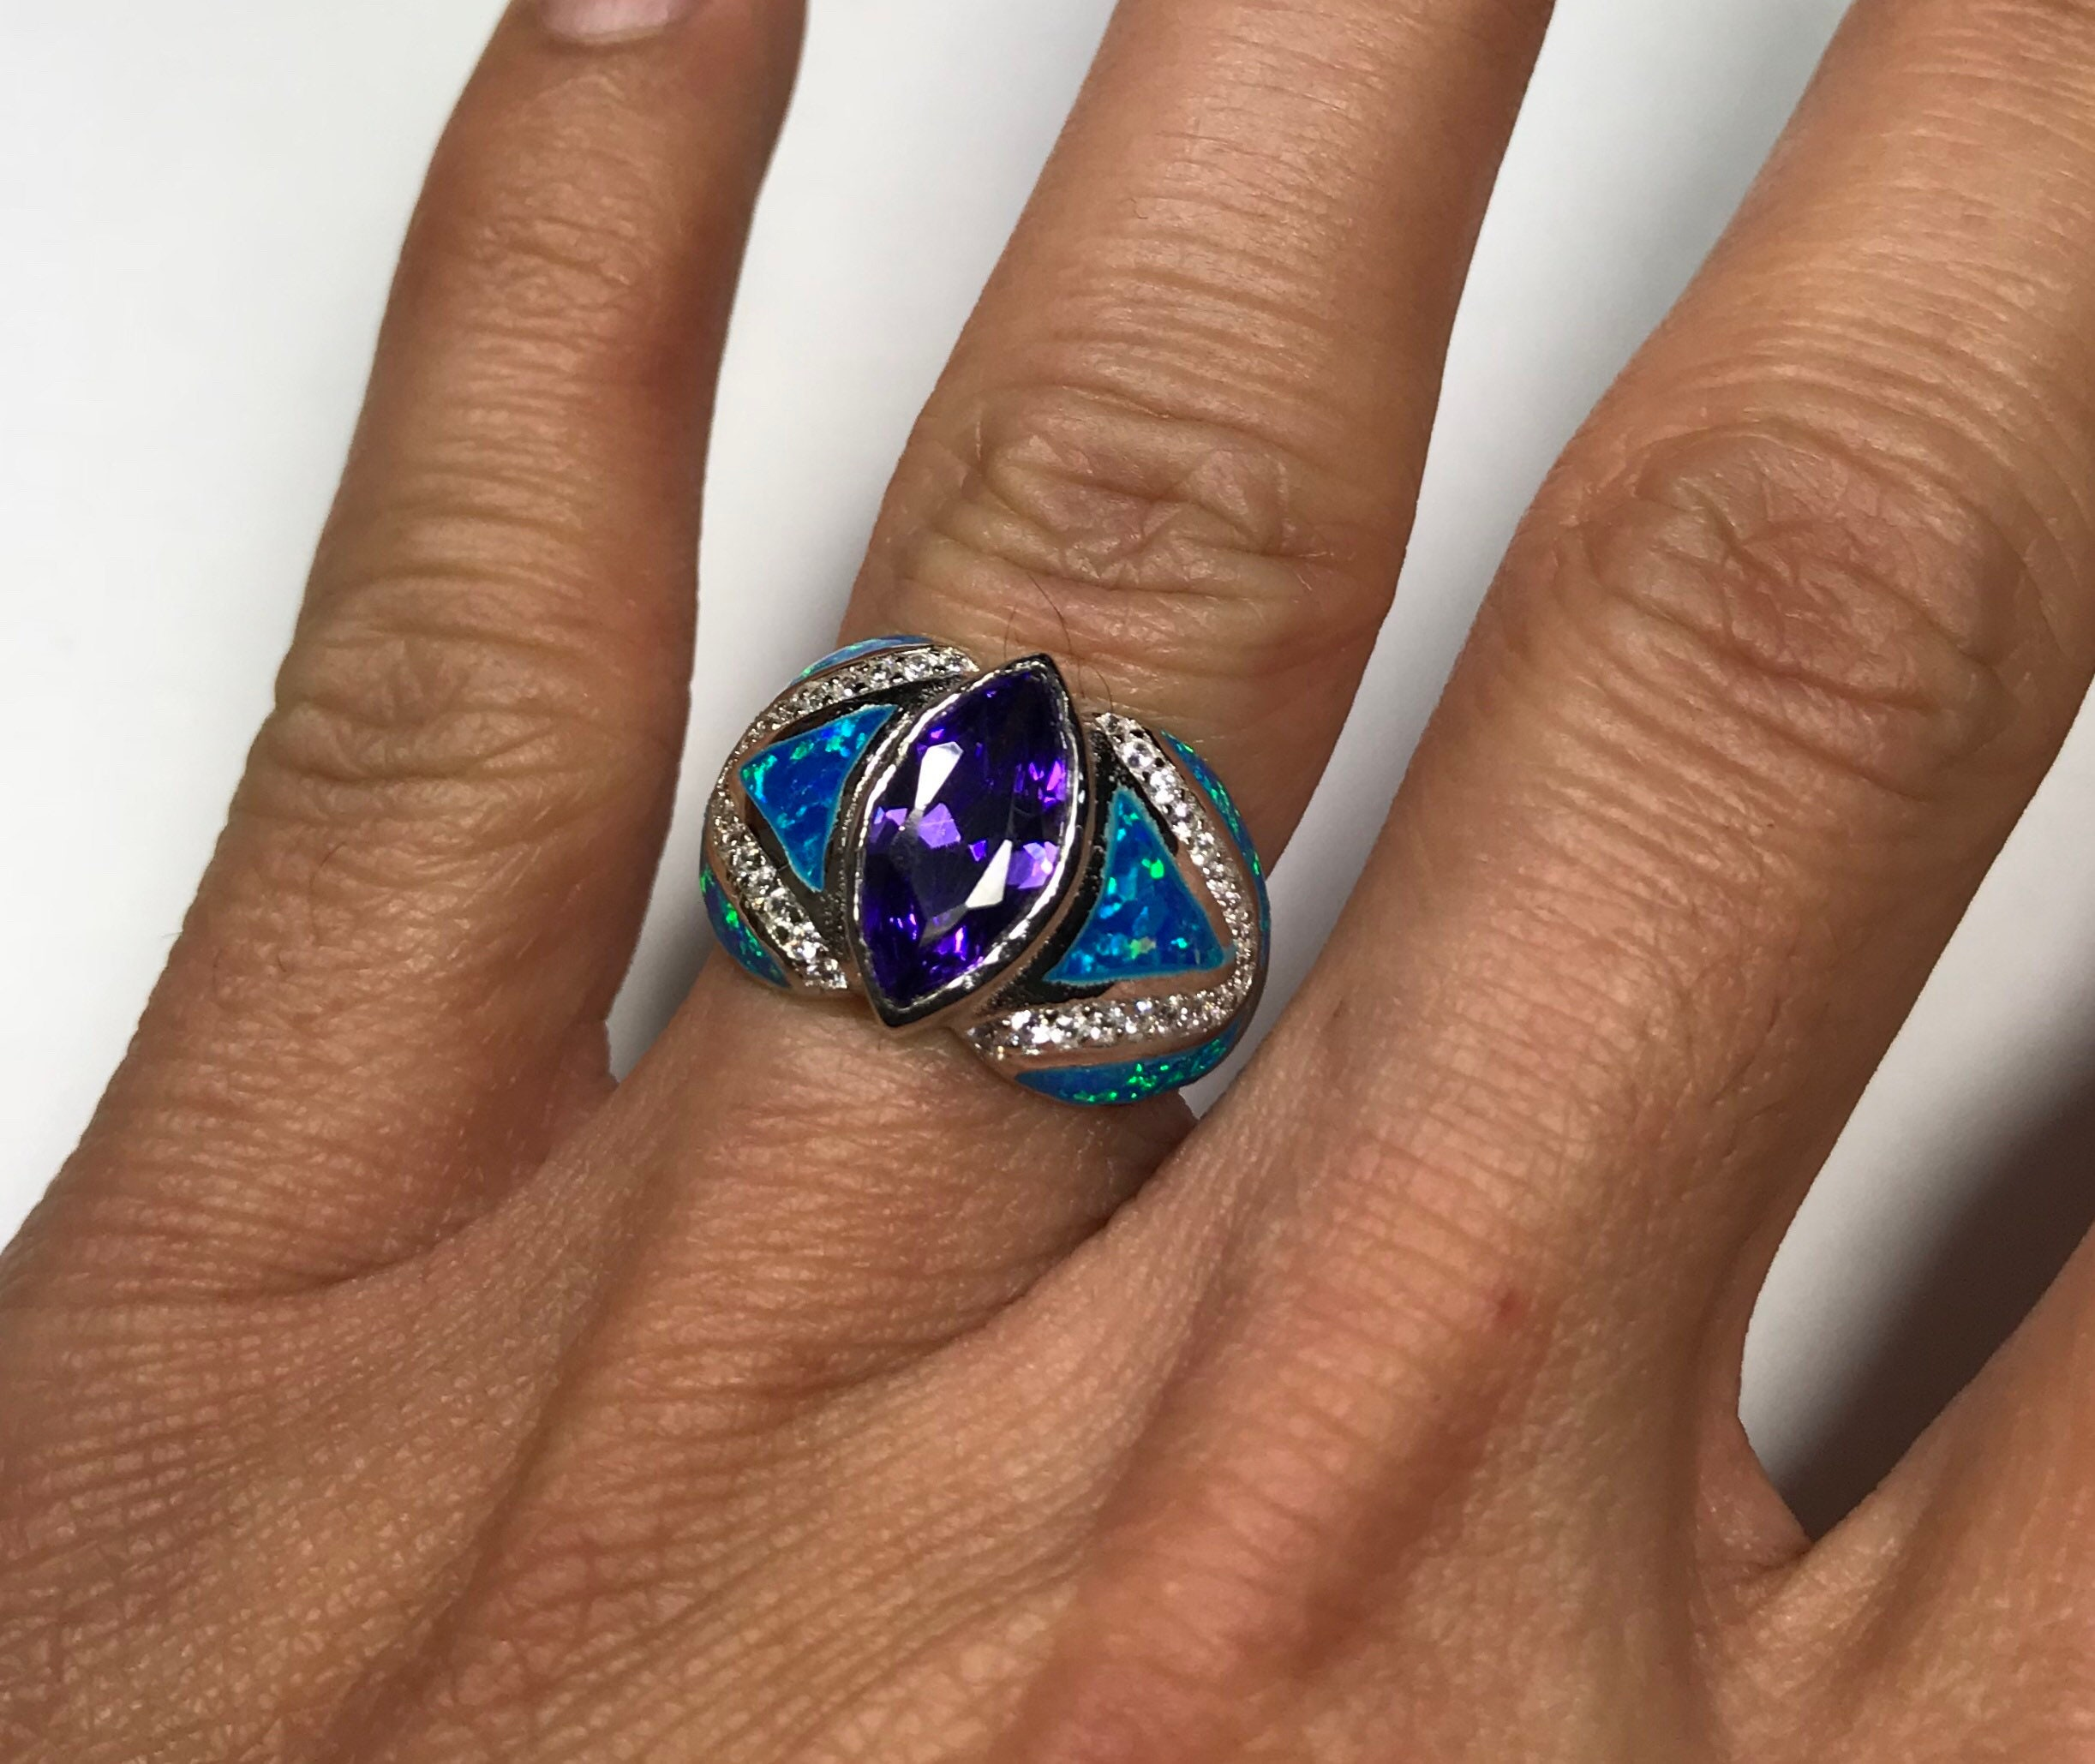 Amethyst /& Blue Fire Opal Inlay Genuine 925 Sterling Silver Ring size 7,8,9